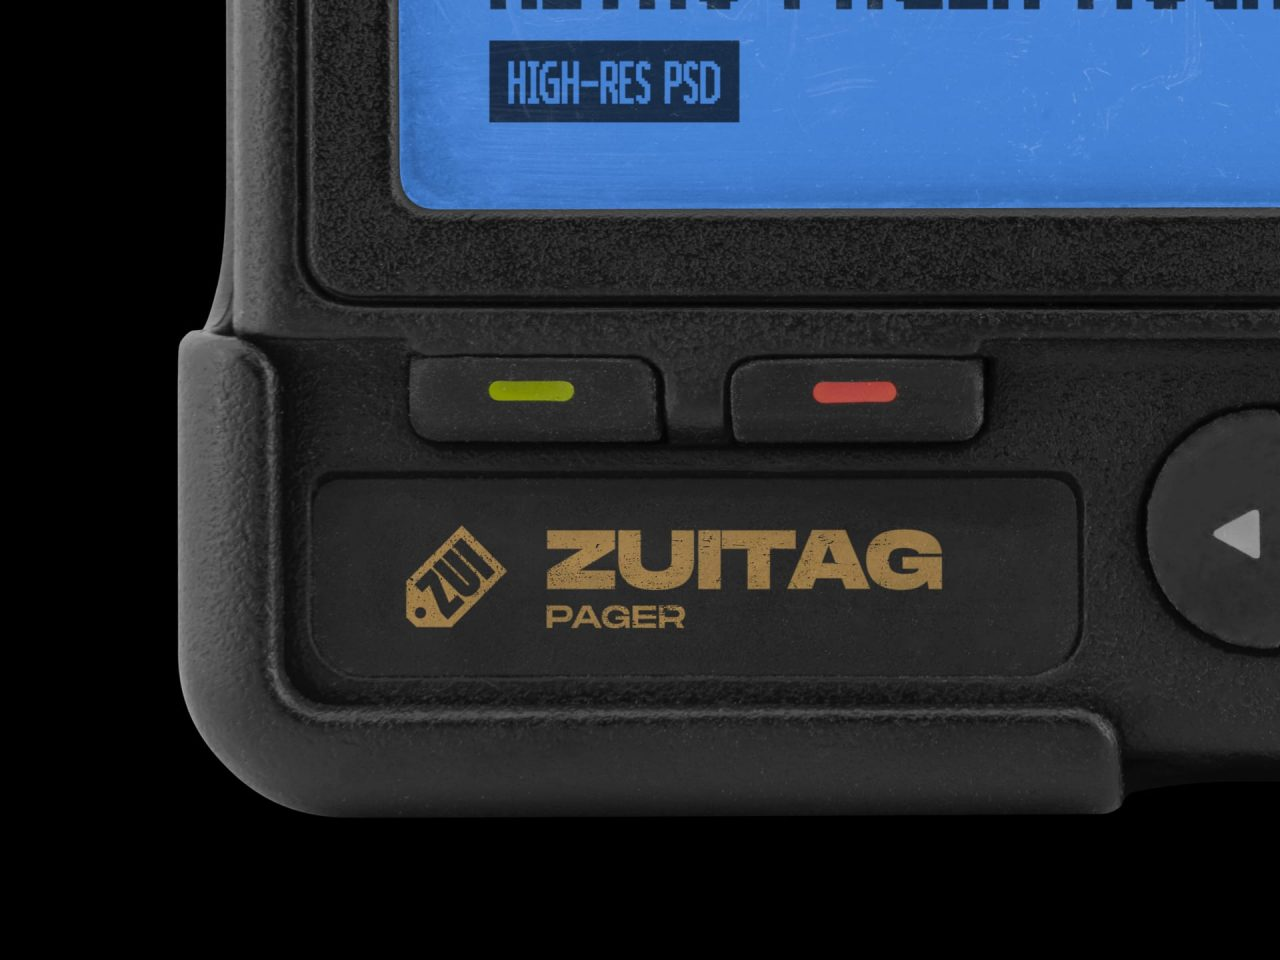 Retro Pager Mockup - Product Image 3